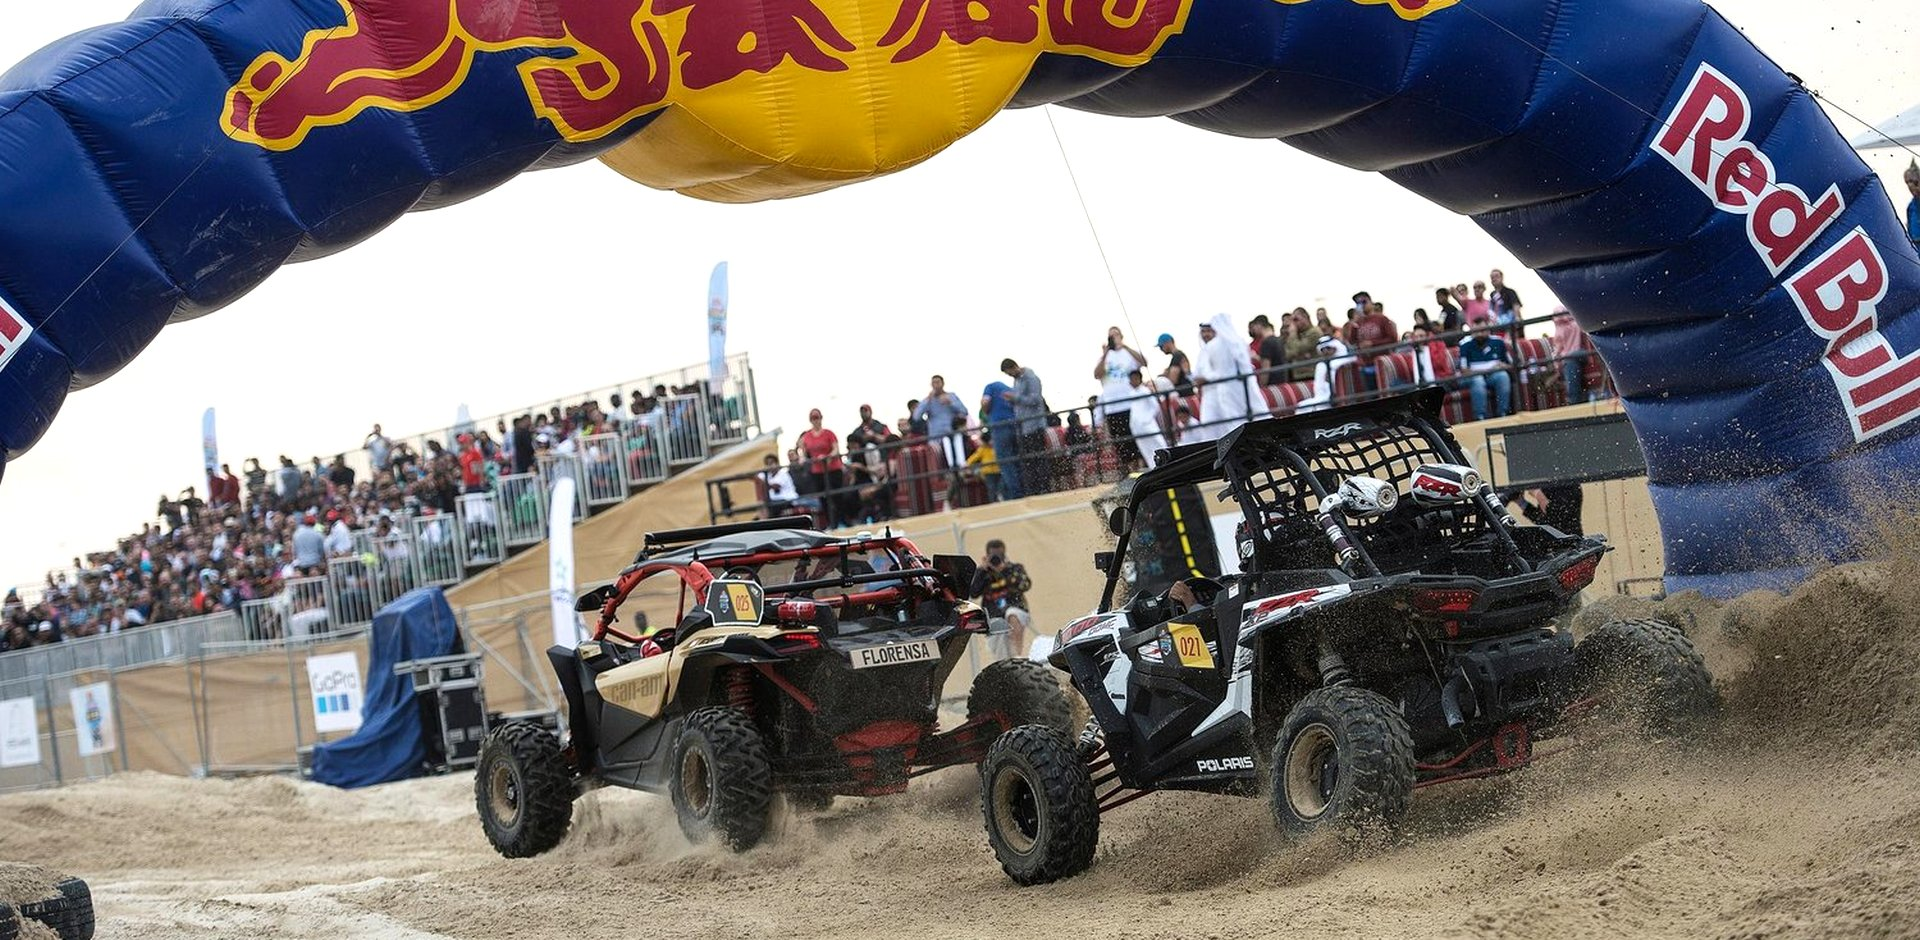 Гонки Red Bull SSV в Катаре: победа Can-Am Maverick